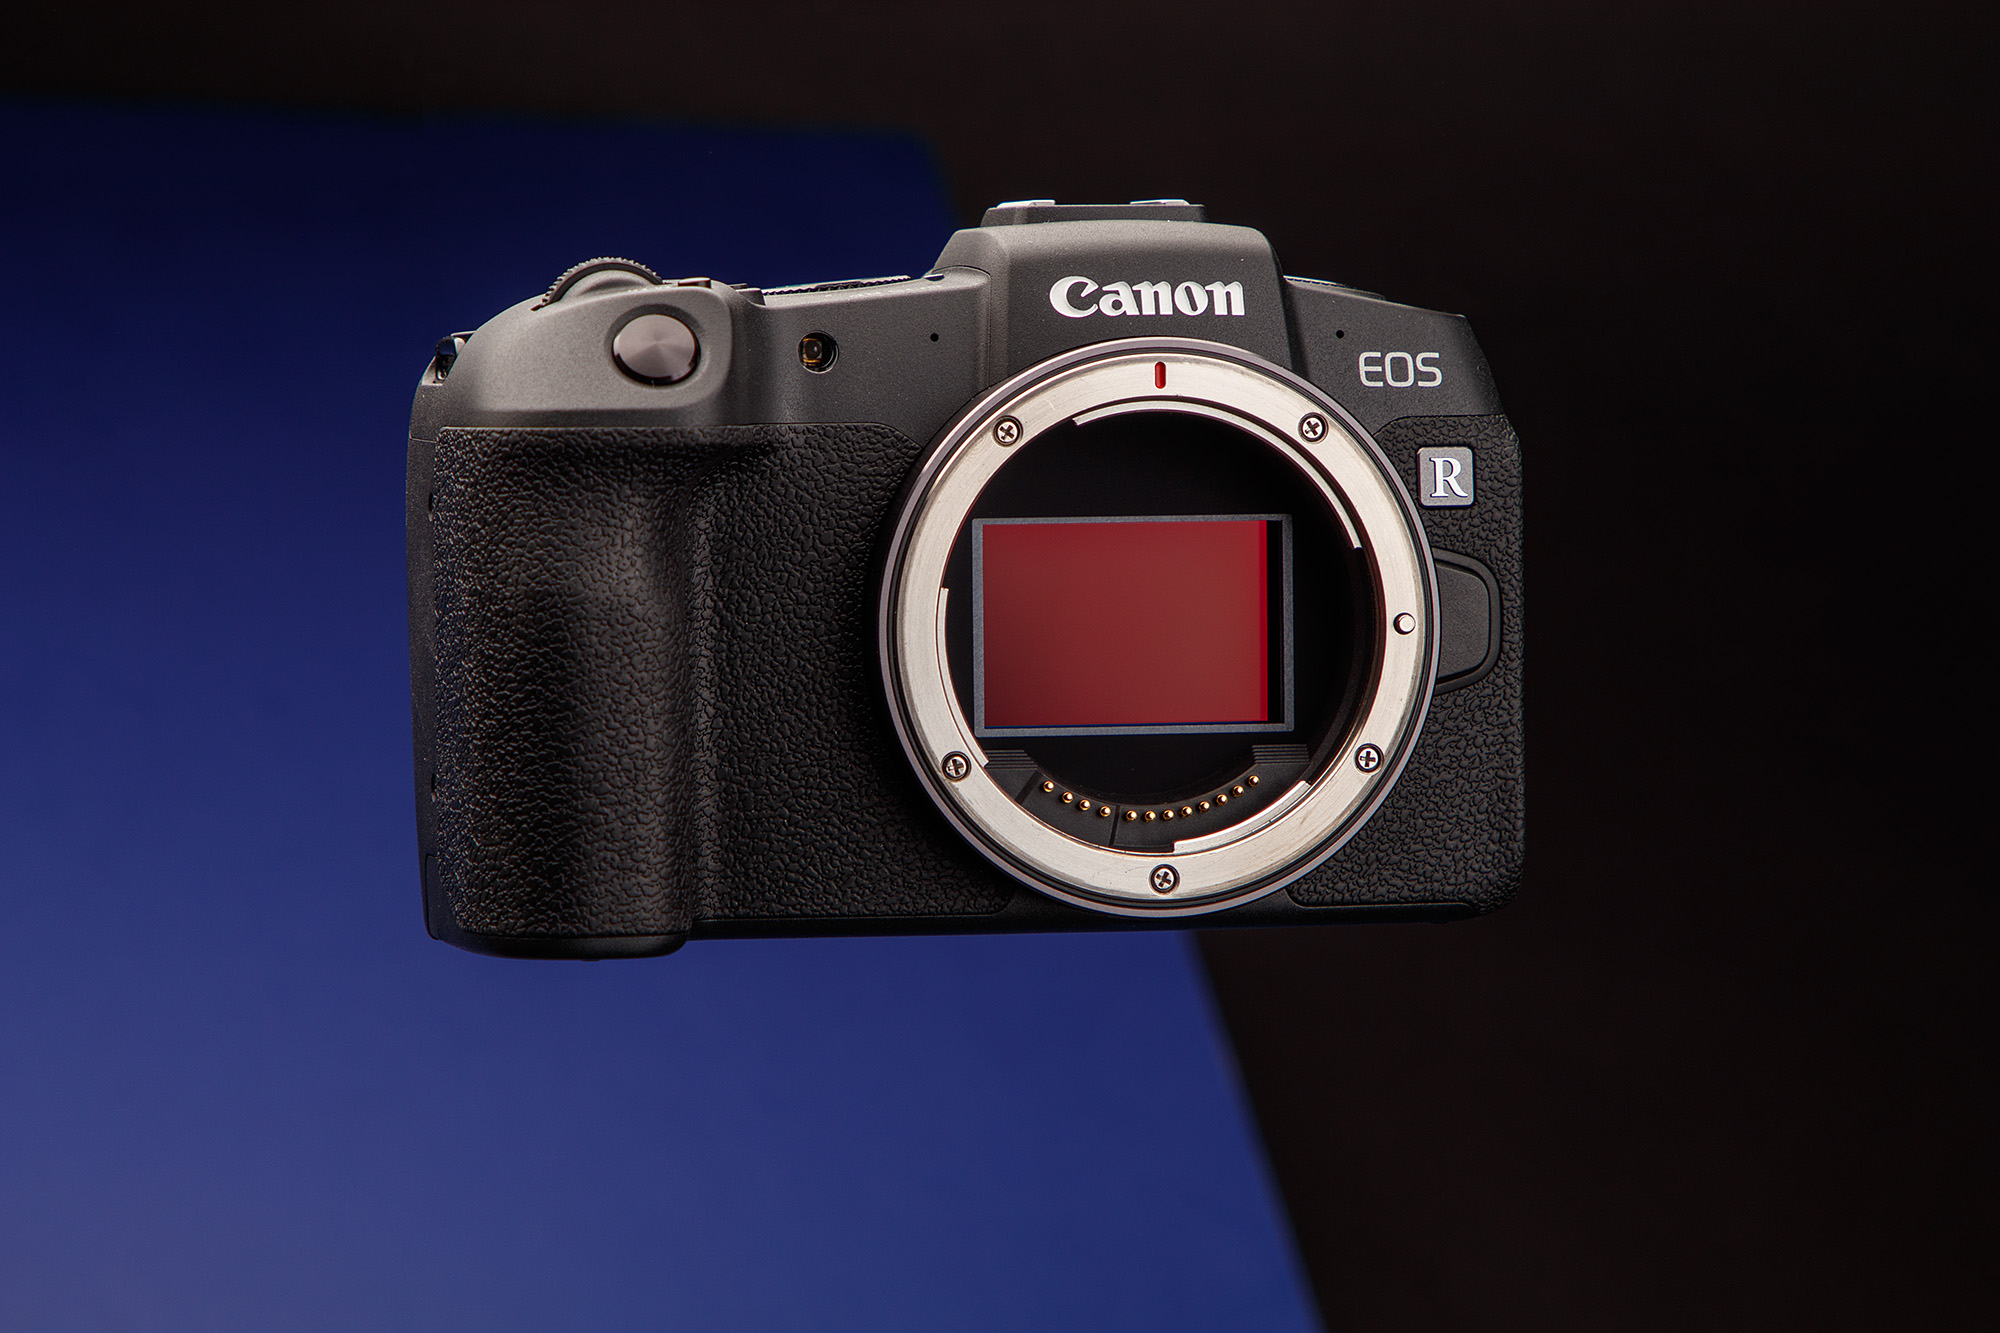 Canon EOS RP review: Digital Photography Review